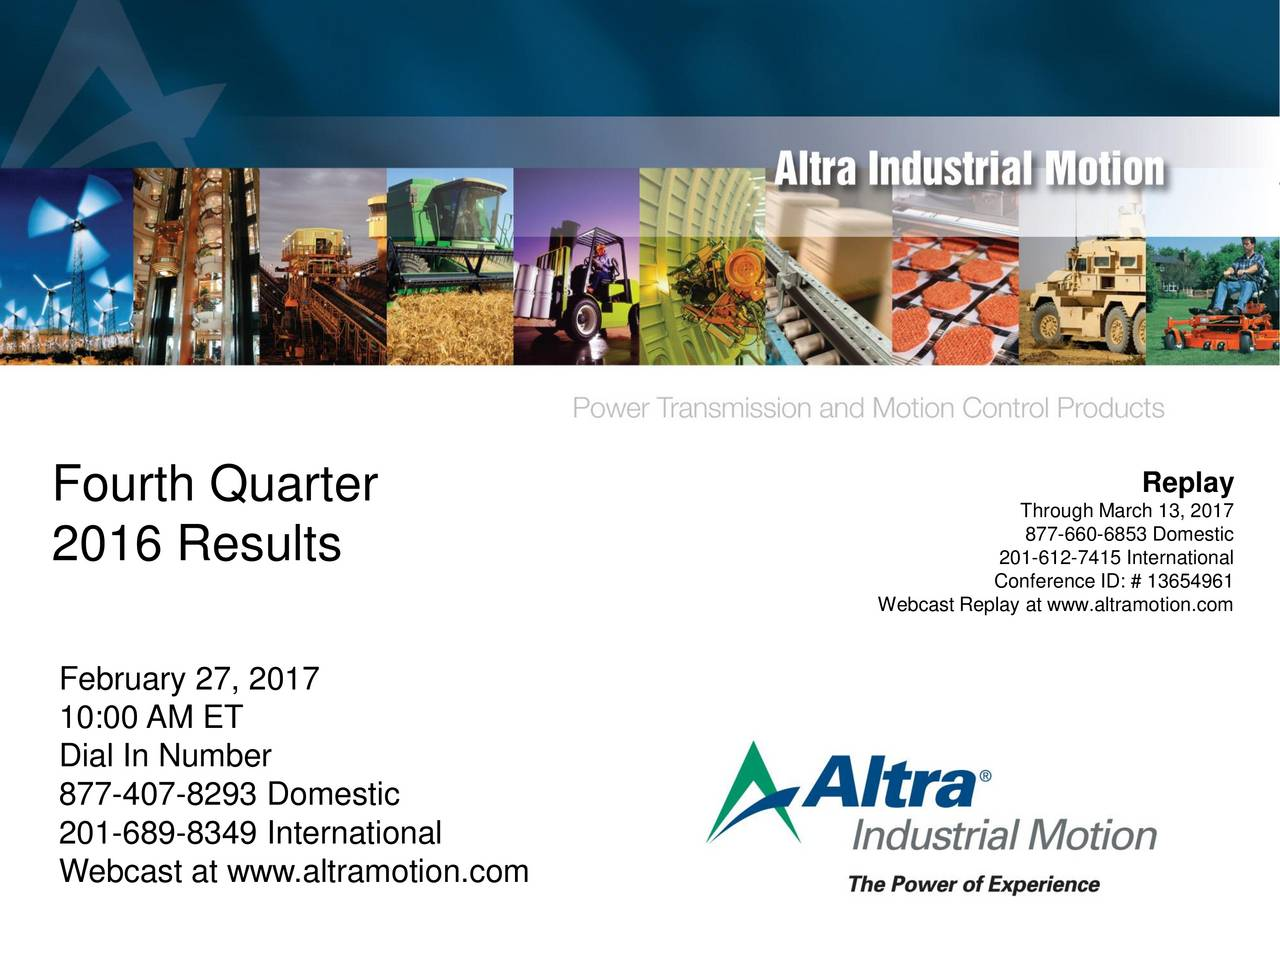 Fourth Quarter Through March 13, 2017 877-660-6853 Domestic 2016 Results 201-612-7415 International Webcast Replay at www.altramotion.com February 27, 2017 10:00 AM ET Dial In Number 877-407-8293 Domestic 201-689-8349 International Webcast at www.altramotion.com